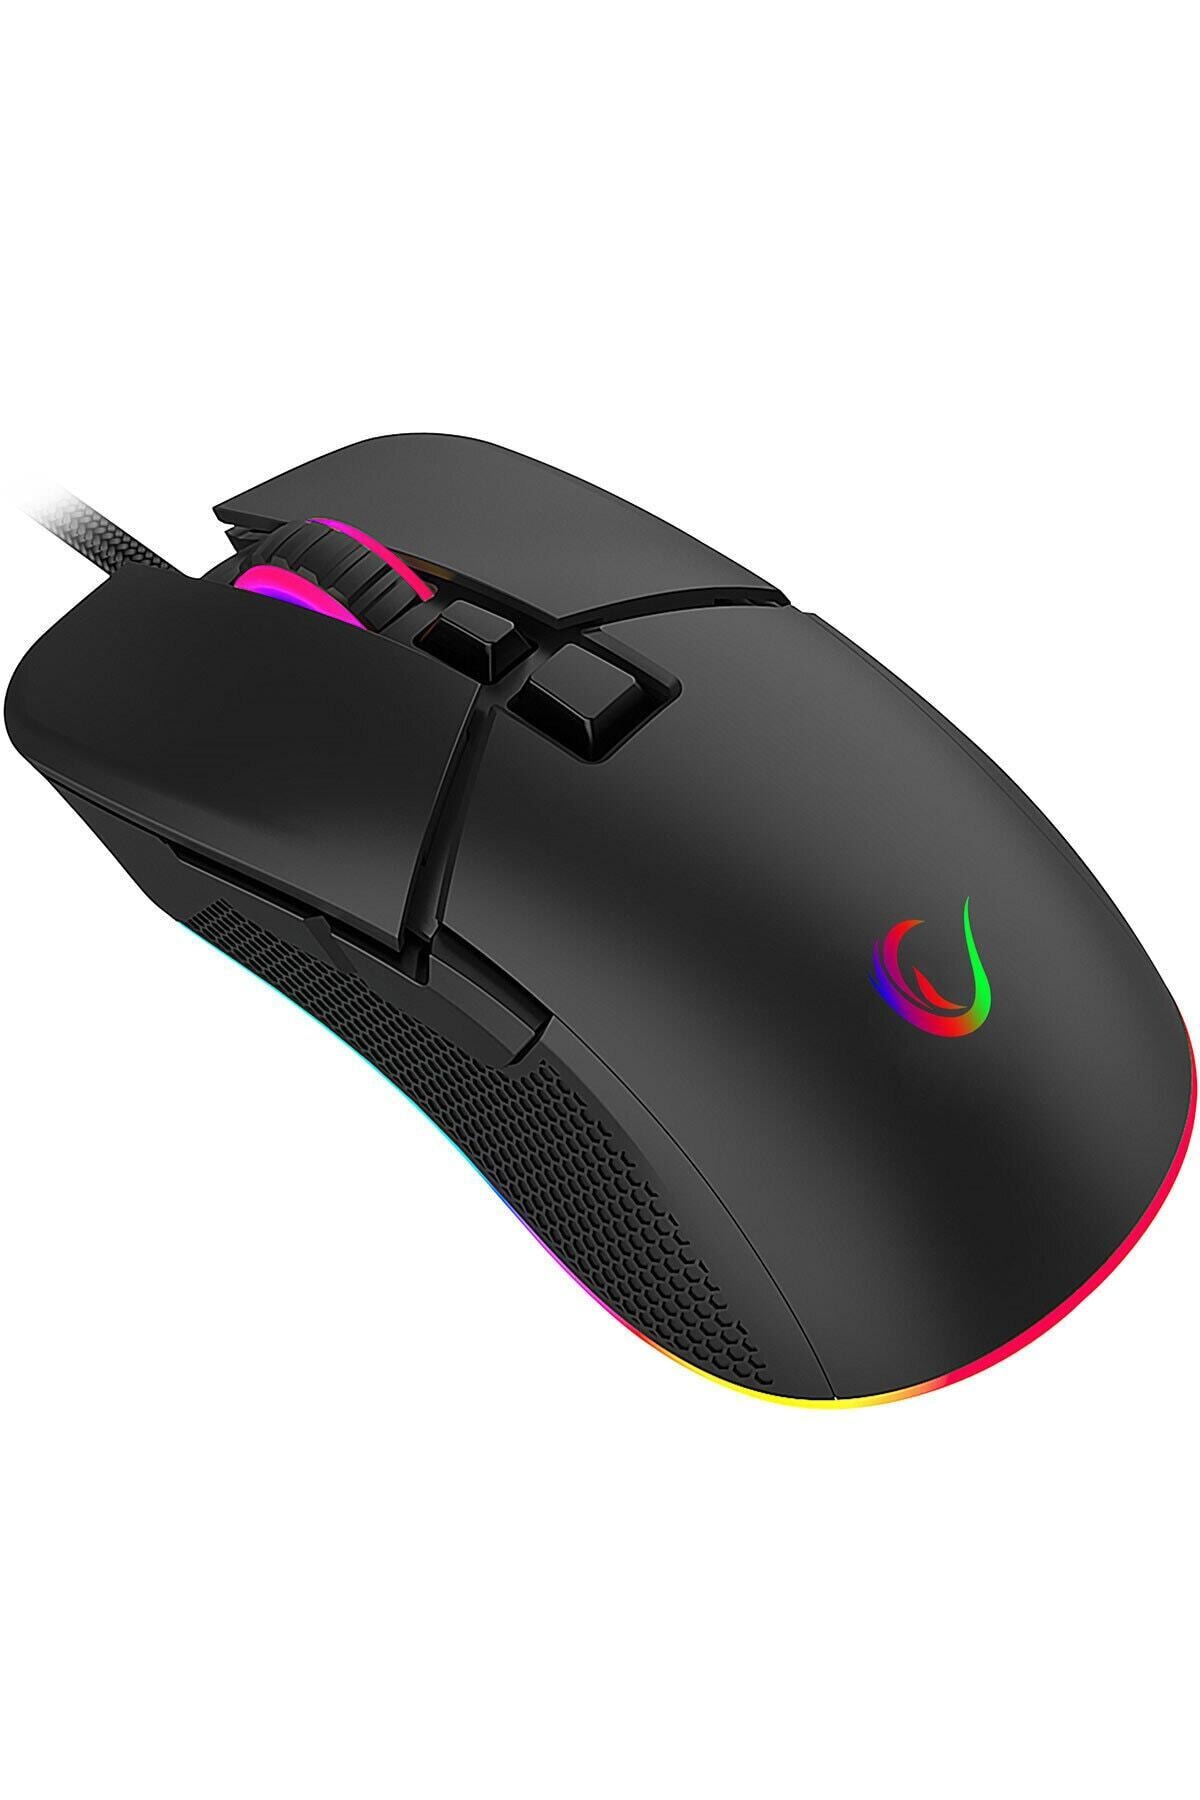 Everest Rampage Everest Sgm-05 X-racer 7d Rgb 6400dpi Optik Gaming Oyuncu Mouse Sgm-05 2